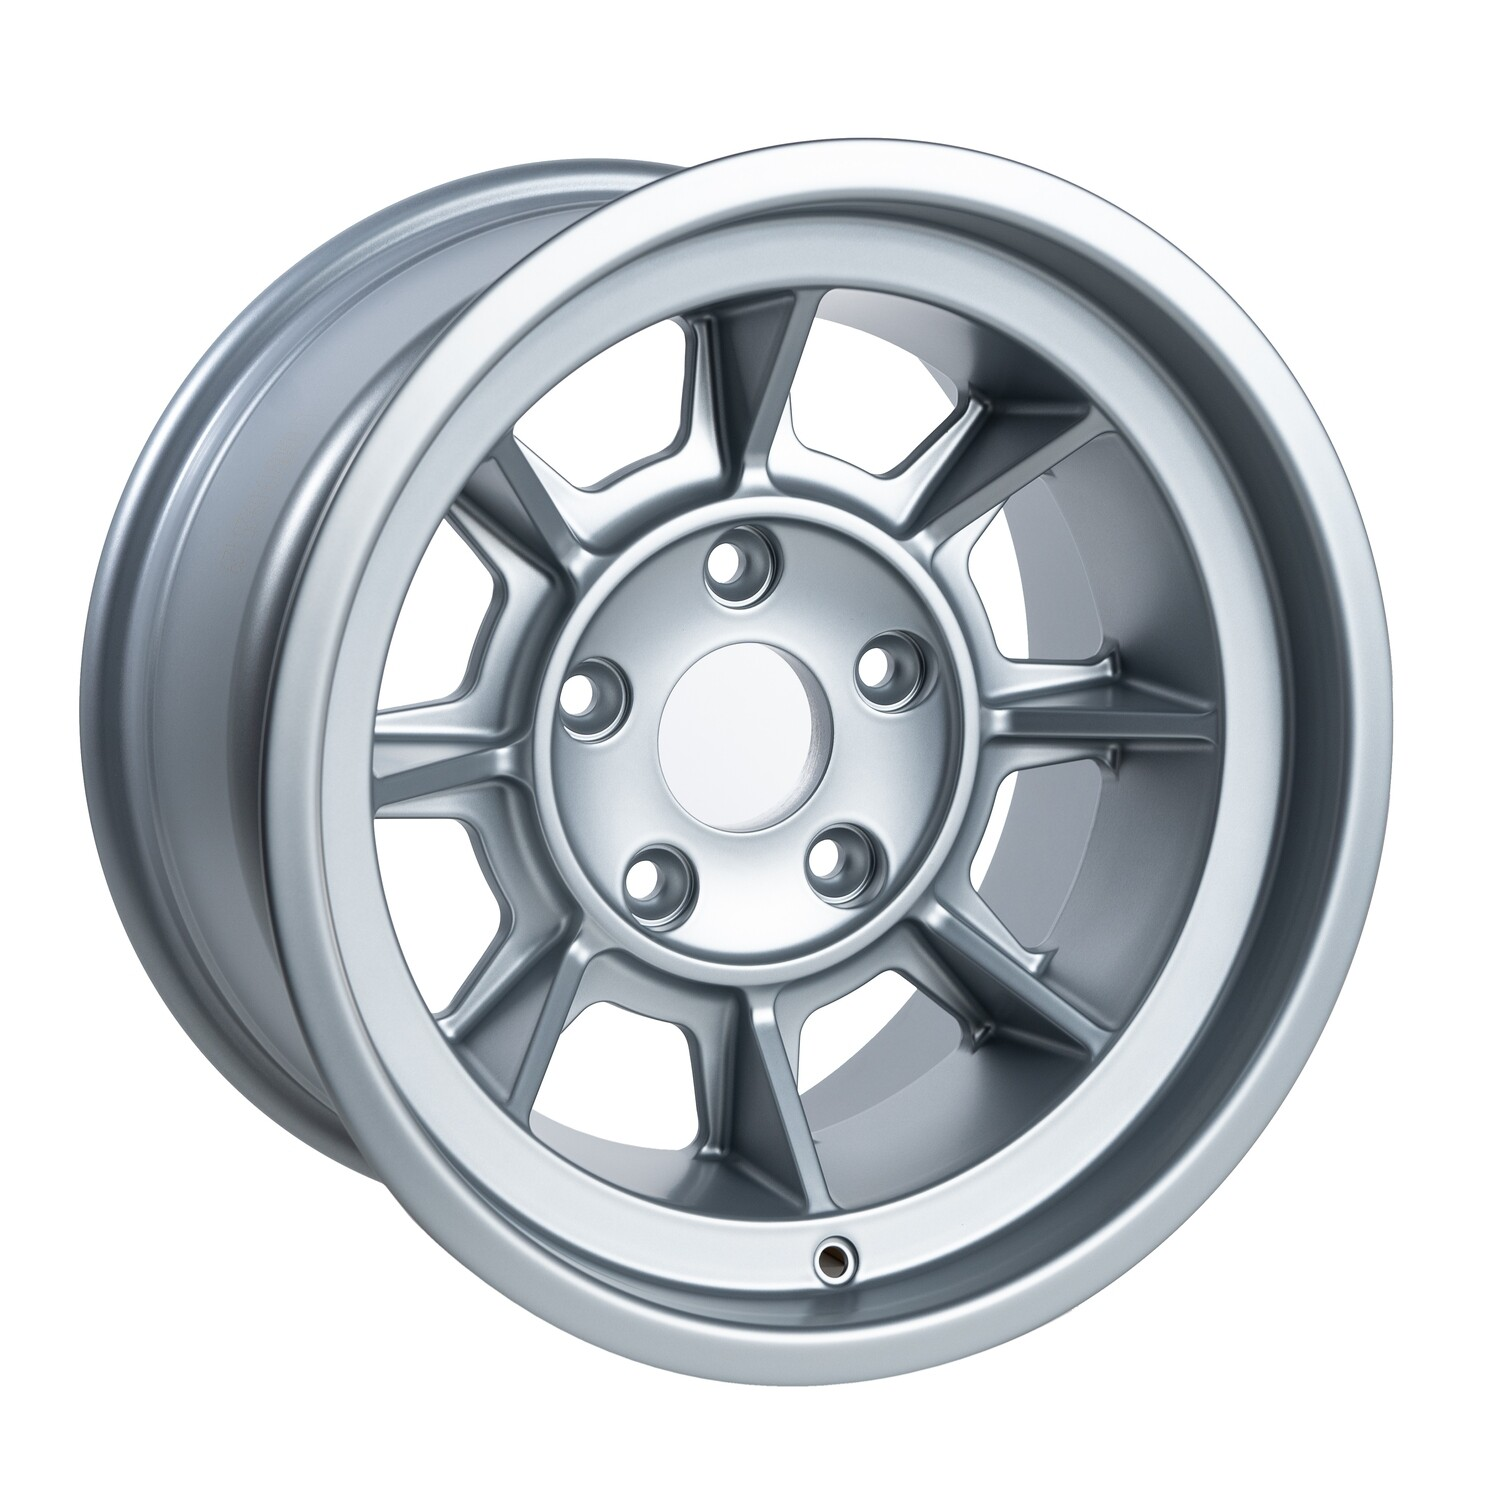 PAG1690 Satin Silver 16 x 9